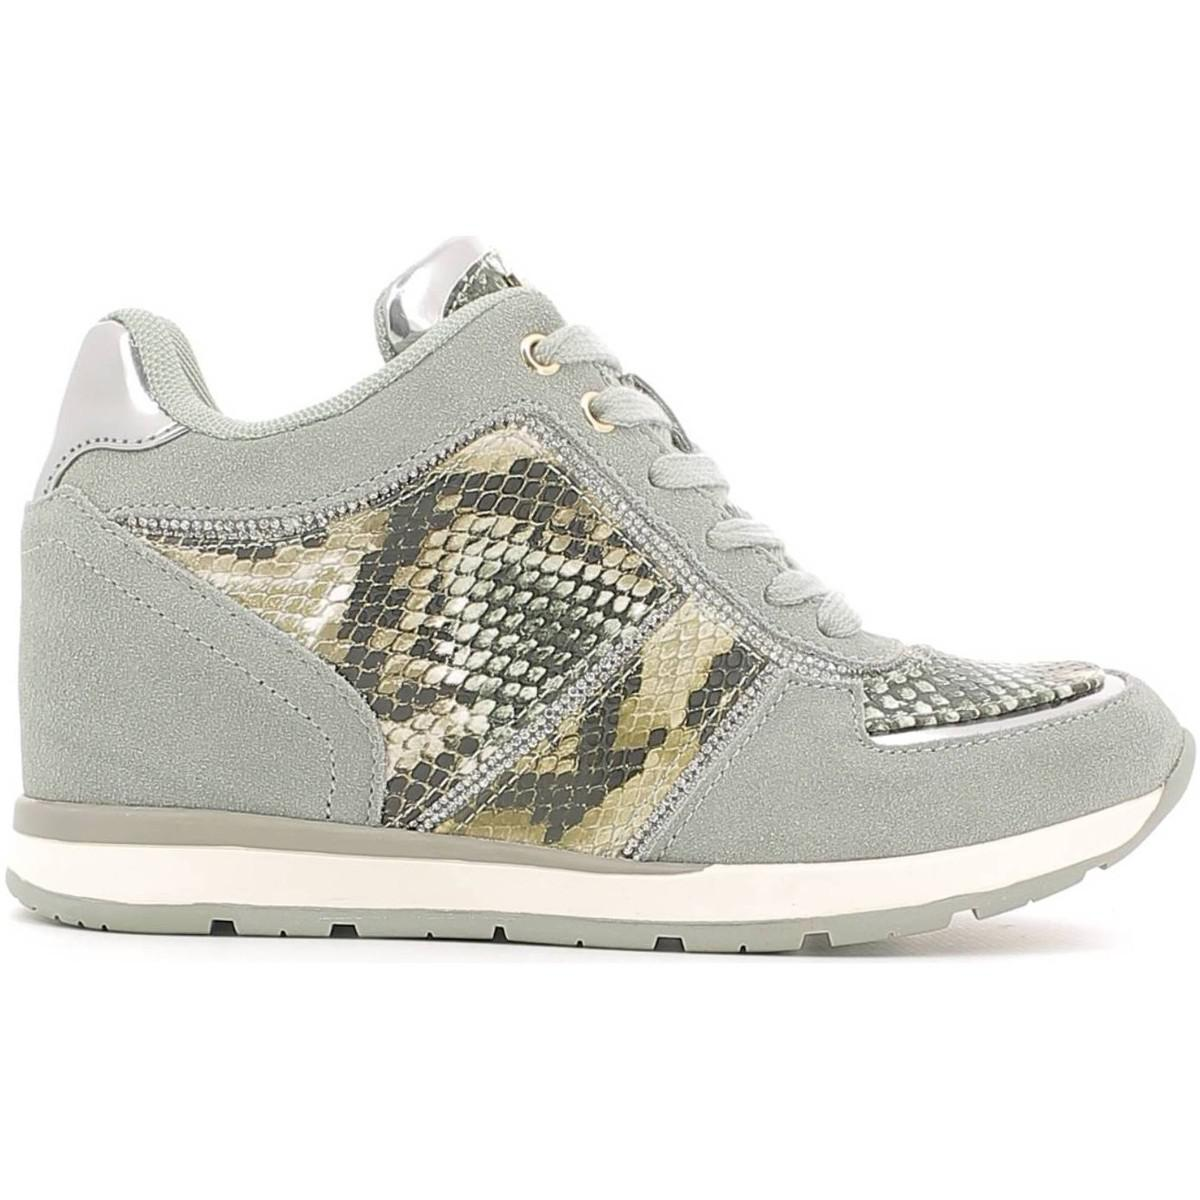 Free Shipping Best Seller Guess Women's FLLCE3 SUE12 Trainers Big Sale Cheap Price Sale Marketable 2EiI1WNa